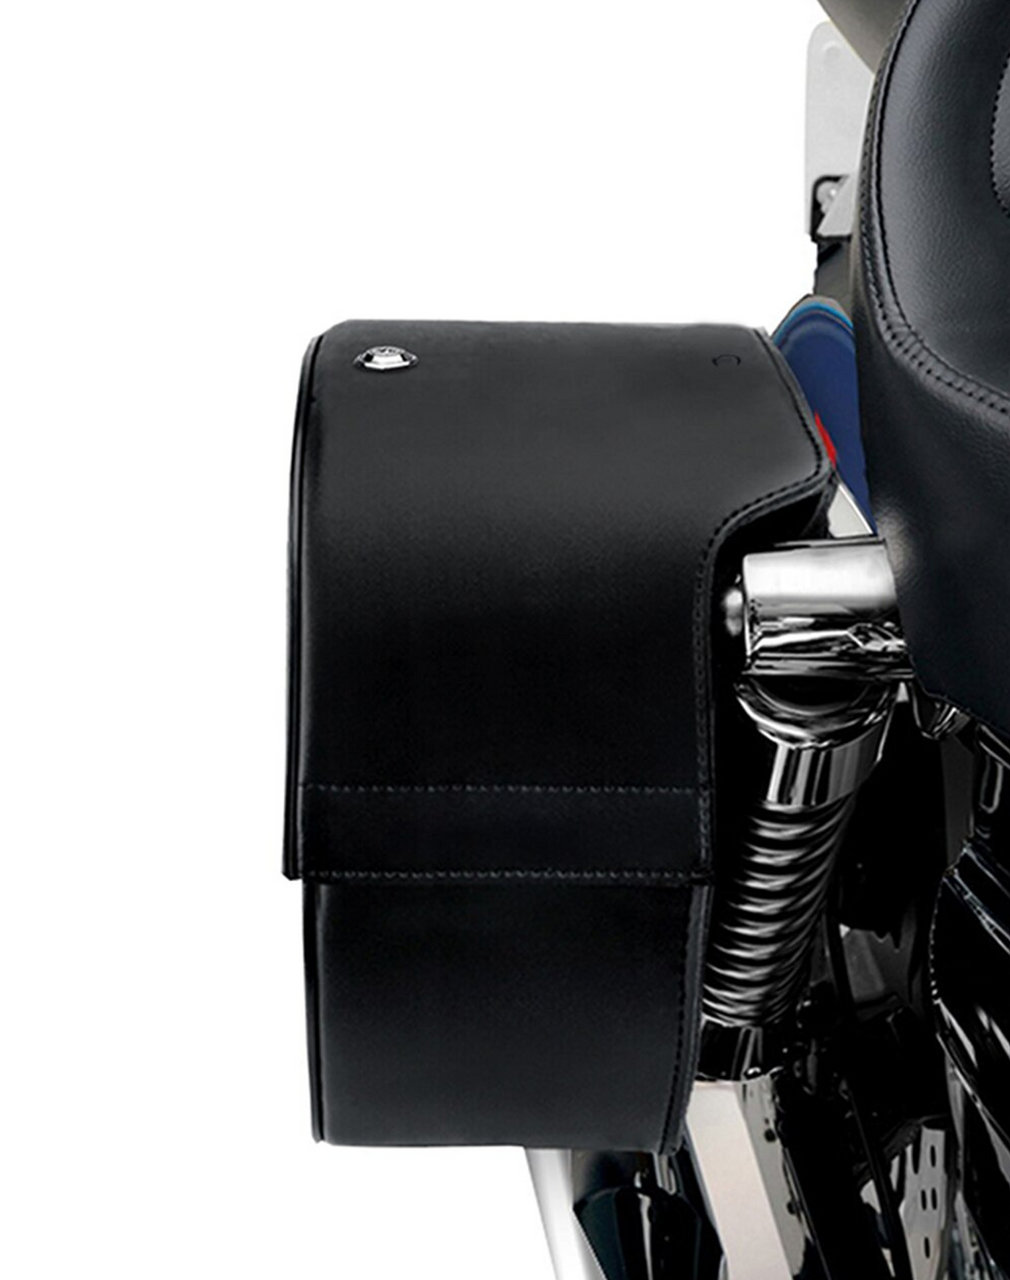 VikingBags Sabre Medium Single Strap Shock Cutout Leather Motorcycle Saddlebags For Harley Sportster Super Low 1200T Shock Cutout View